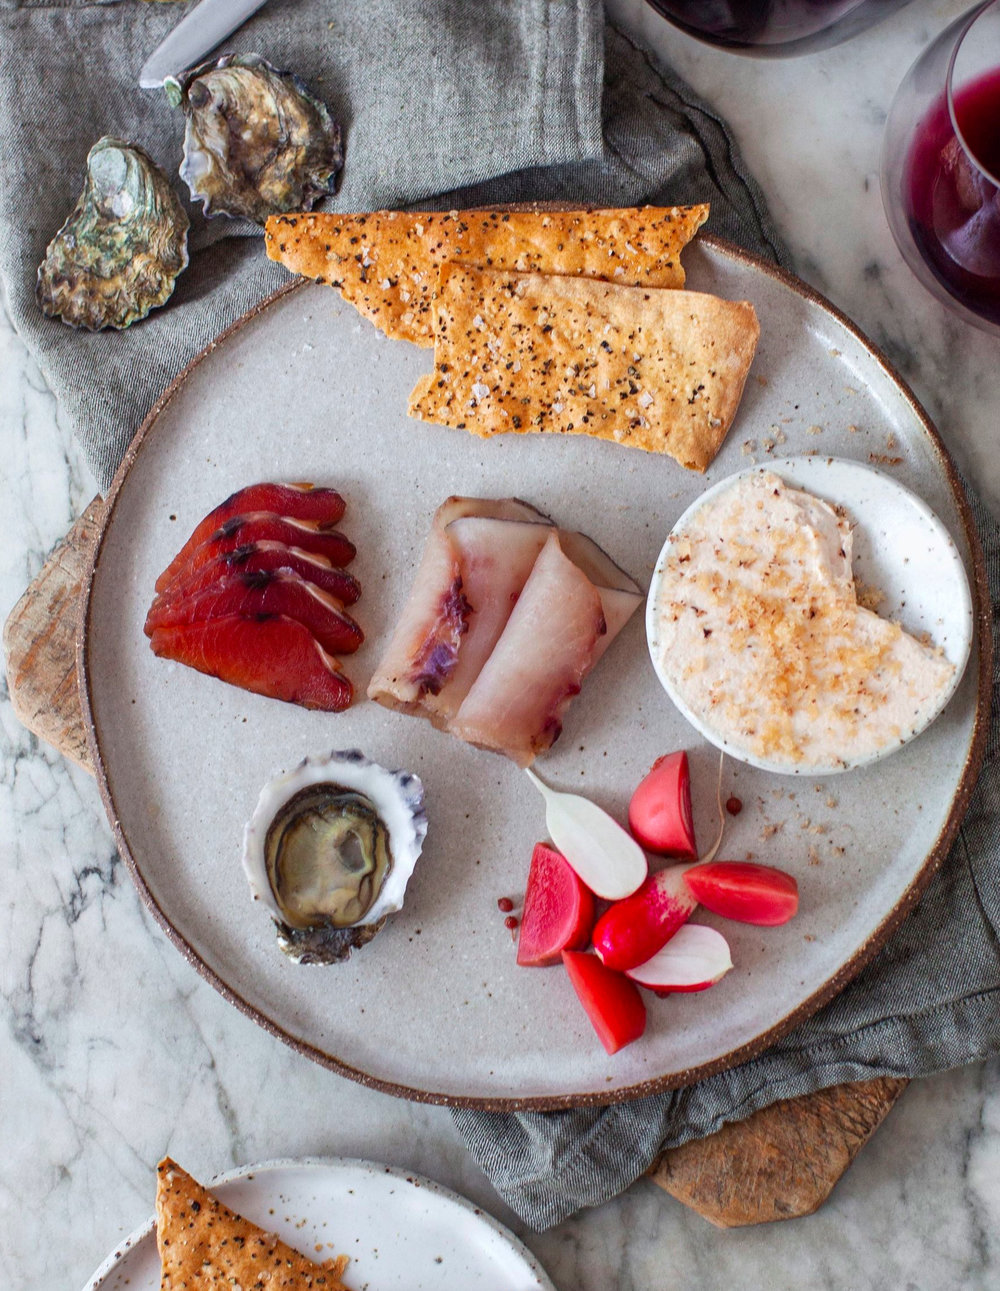 CONDE NAST TRAVELLER JAN/FEB 2019 - This stunning photo by Alice Wesley Smith and Amanda Chebatte shot at the Fish Butchery in Sydney featuring ceramics by me appeared in the Conde Nast Traveller GOLD LIST 2019 issue. How gorgeous is it?